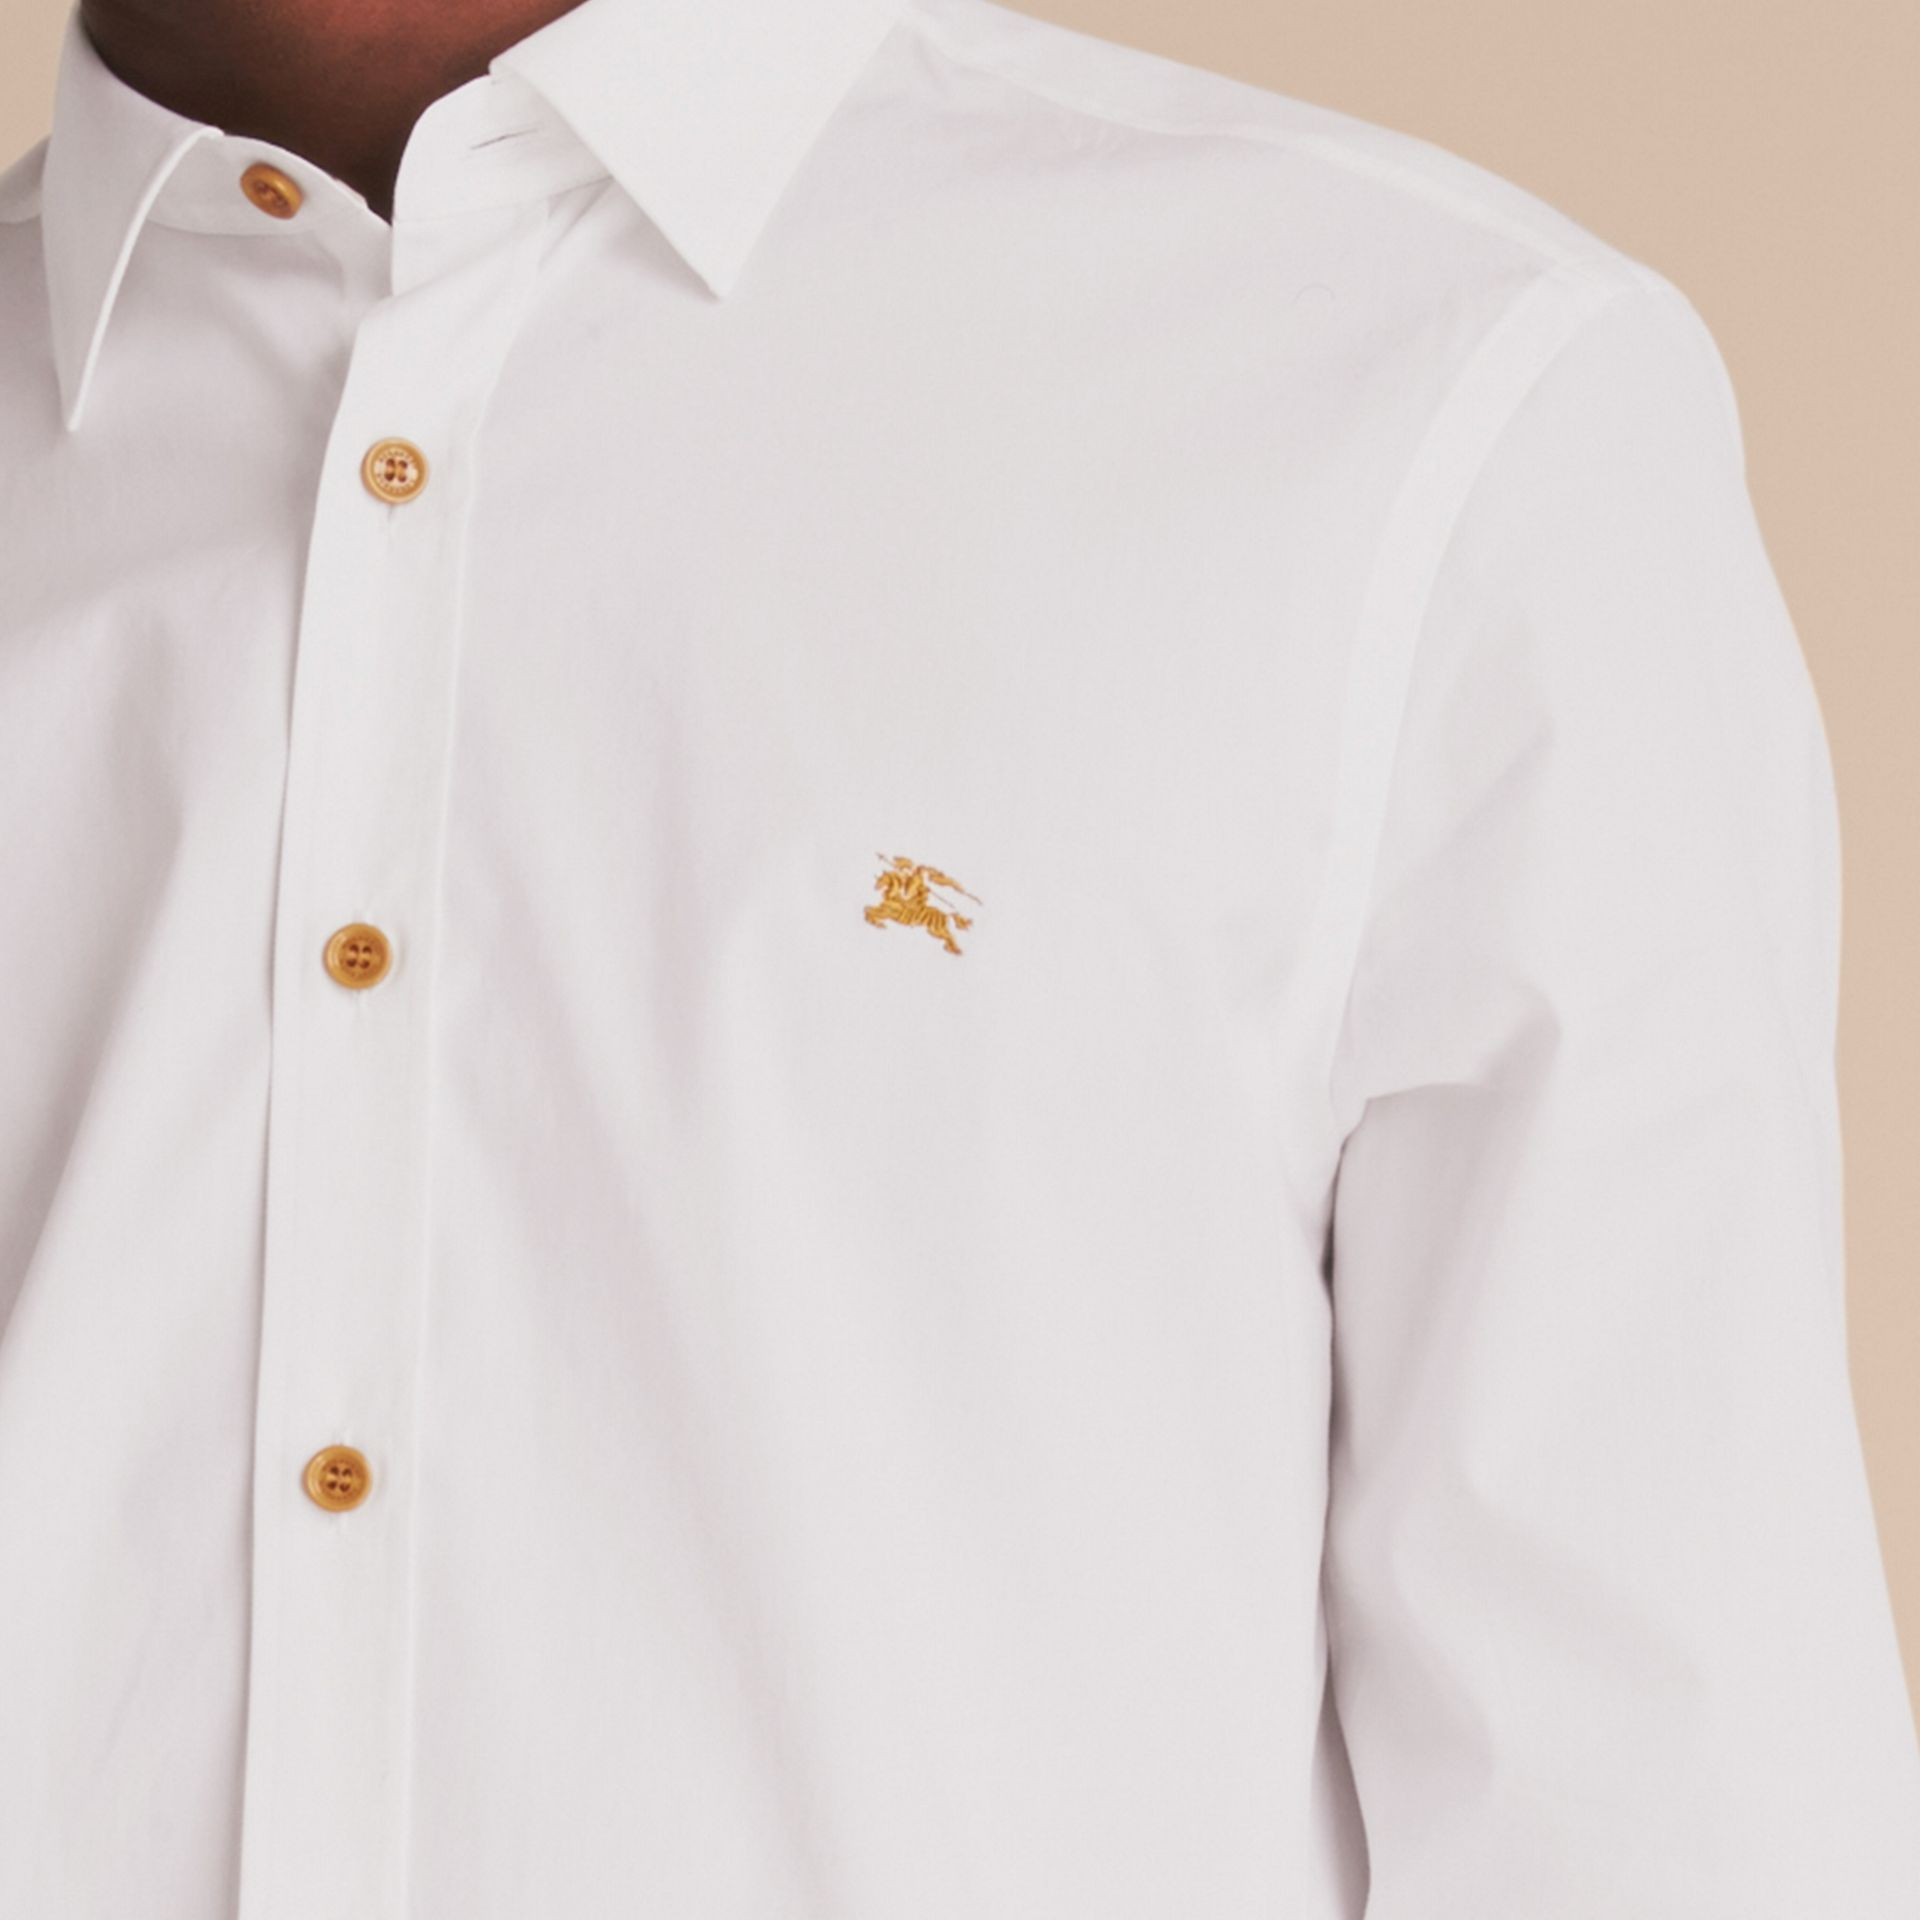 Resin Button Cotton Poplin Shirt in White - Men | Burberry - gallery image 5